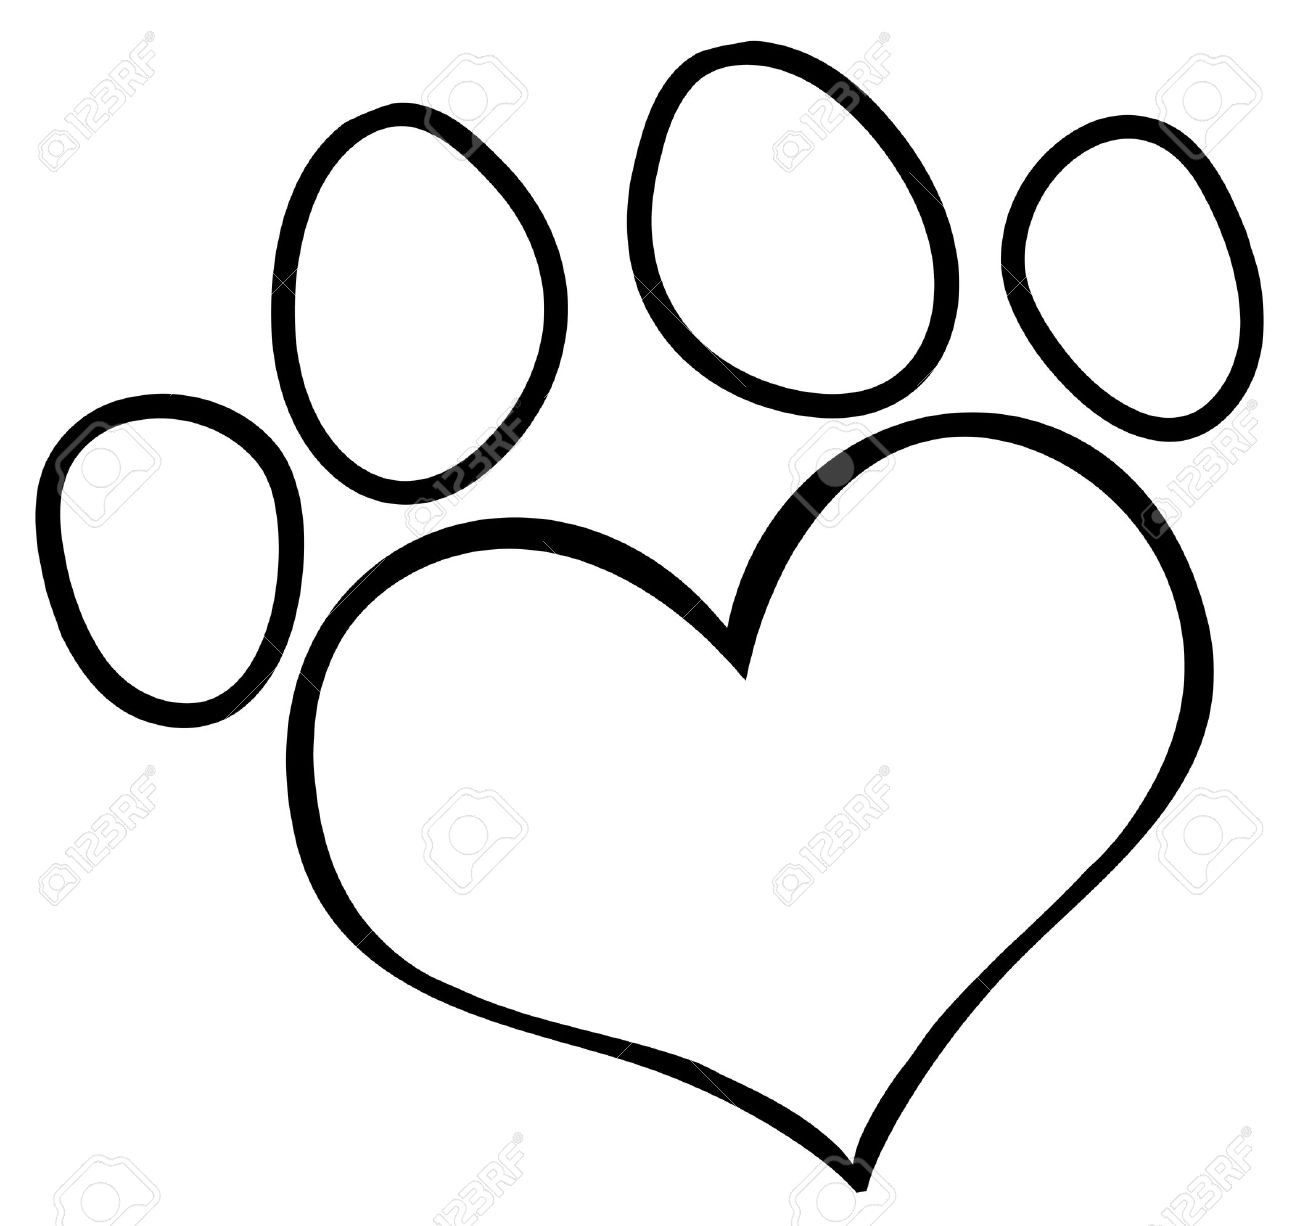 Cougar Paw Clip Art.